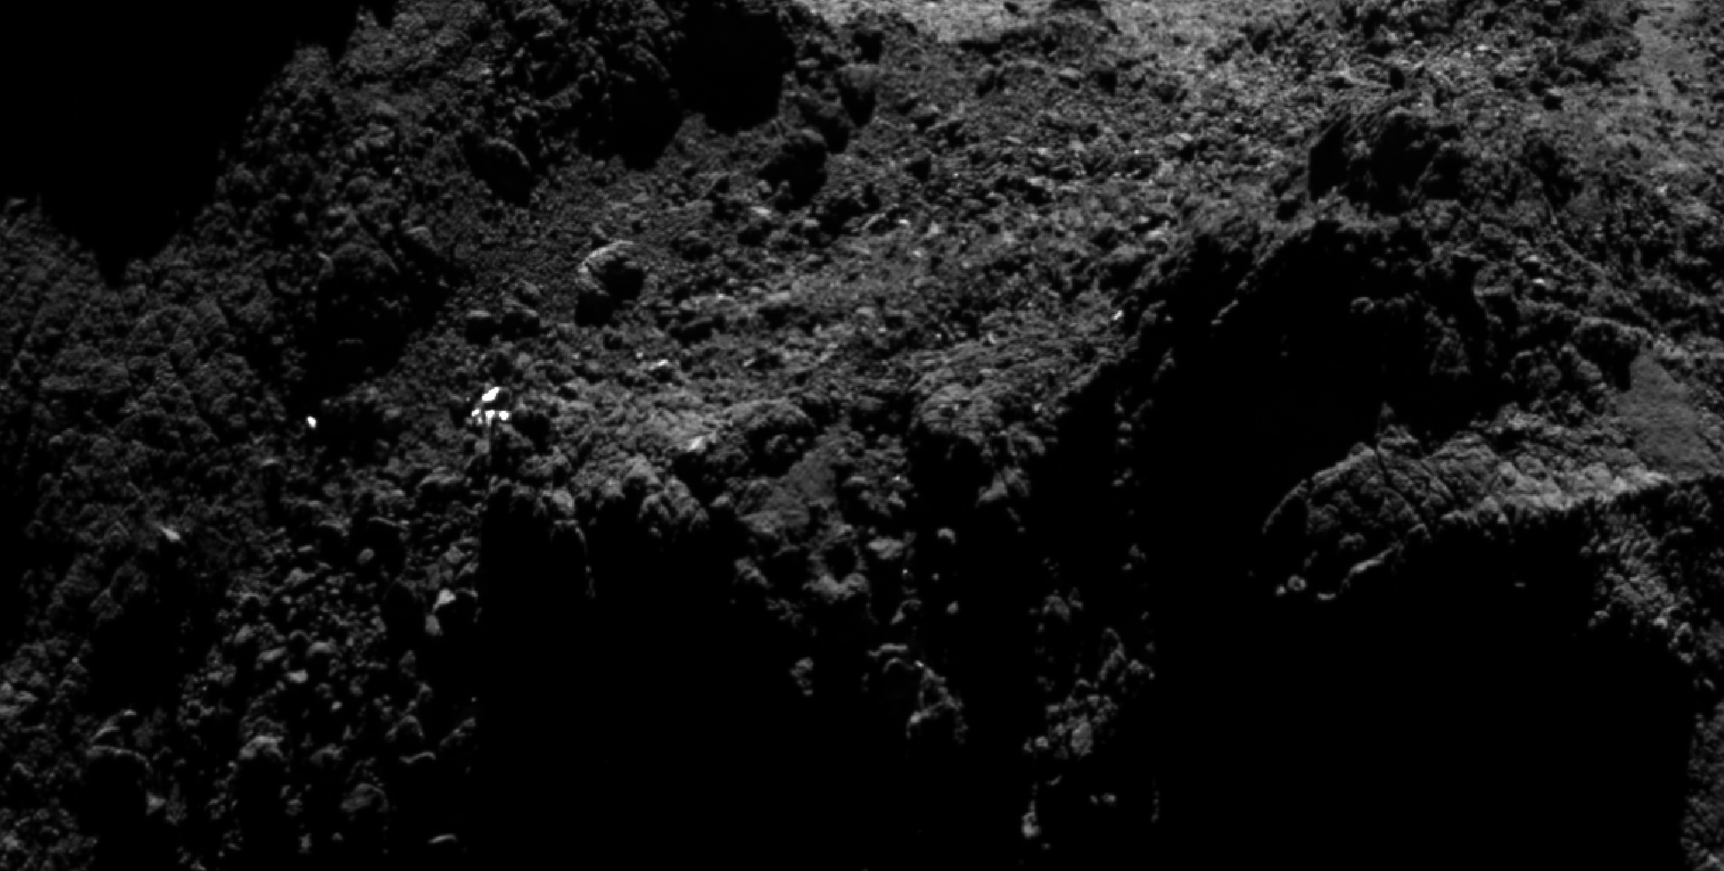 esa_rosetta_osiris_search_zoom1.png